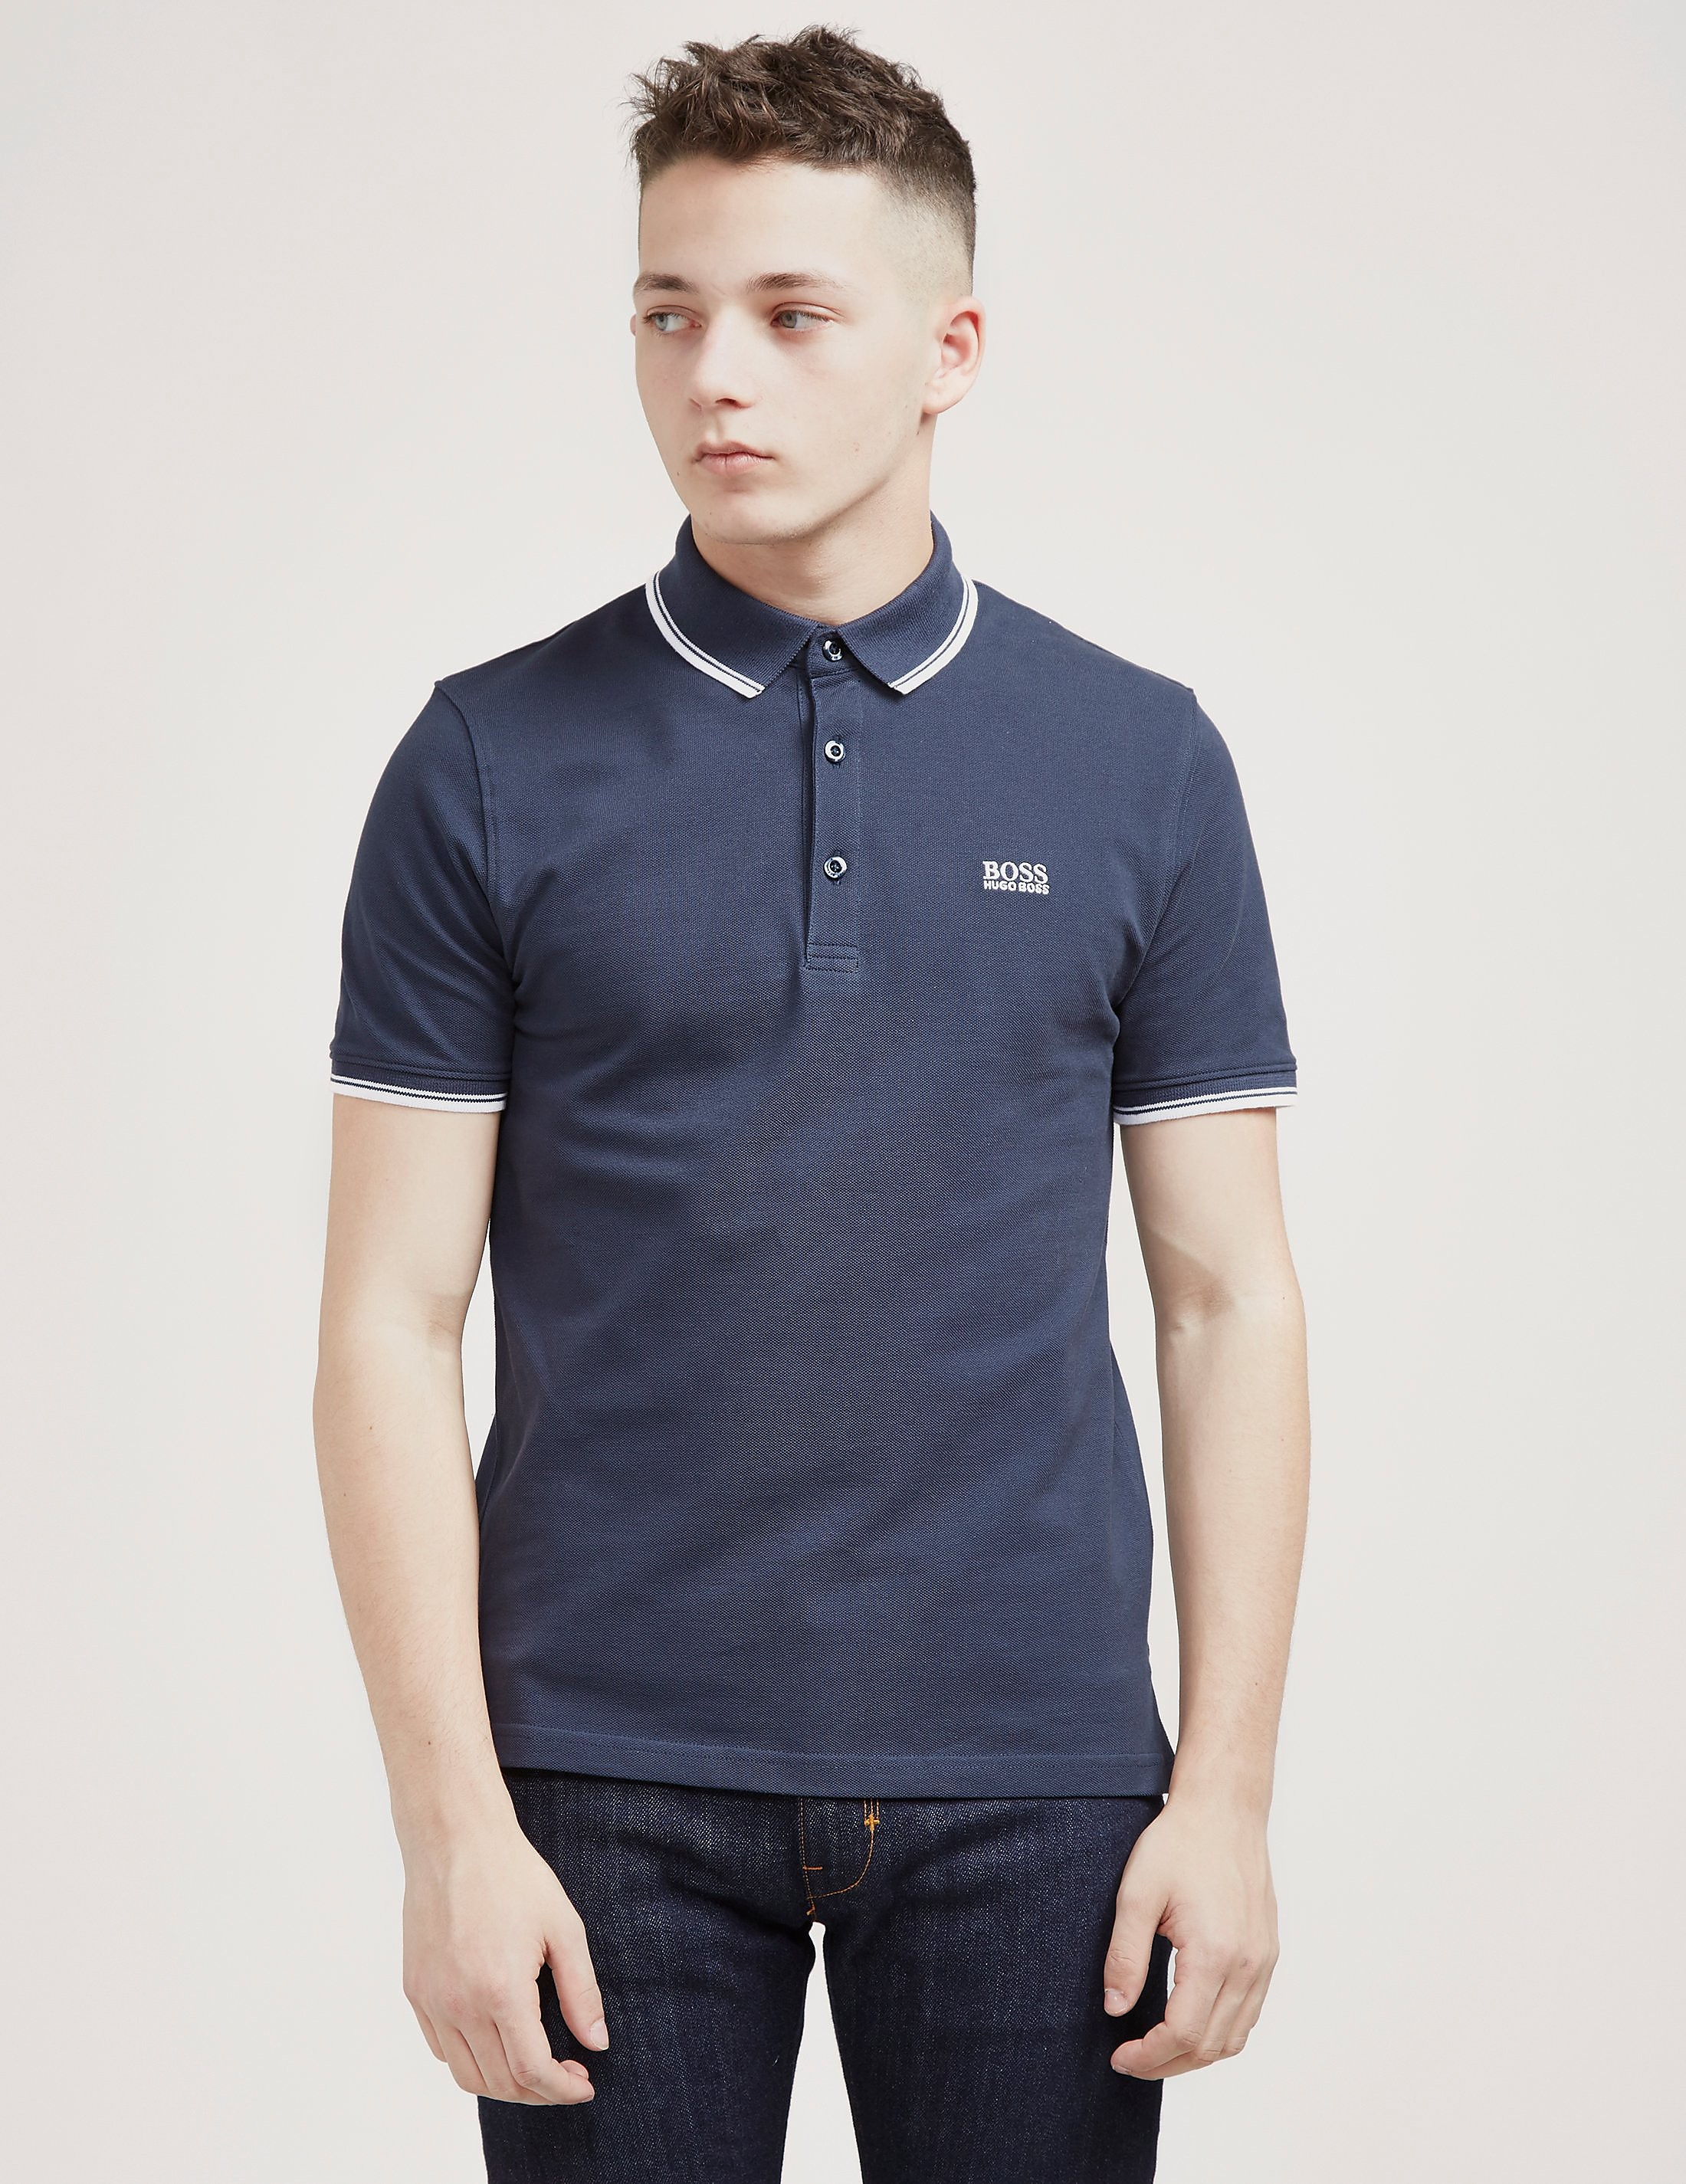 BOSS Core Short Sleeve Polo Shirt